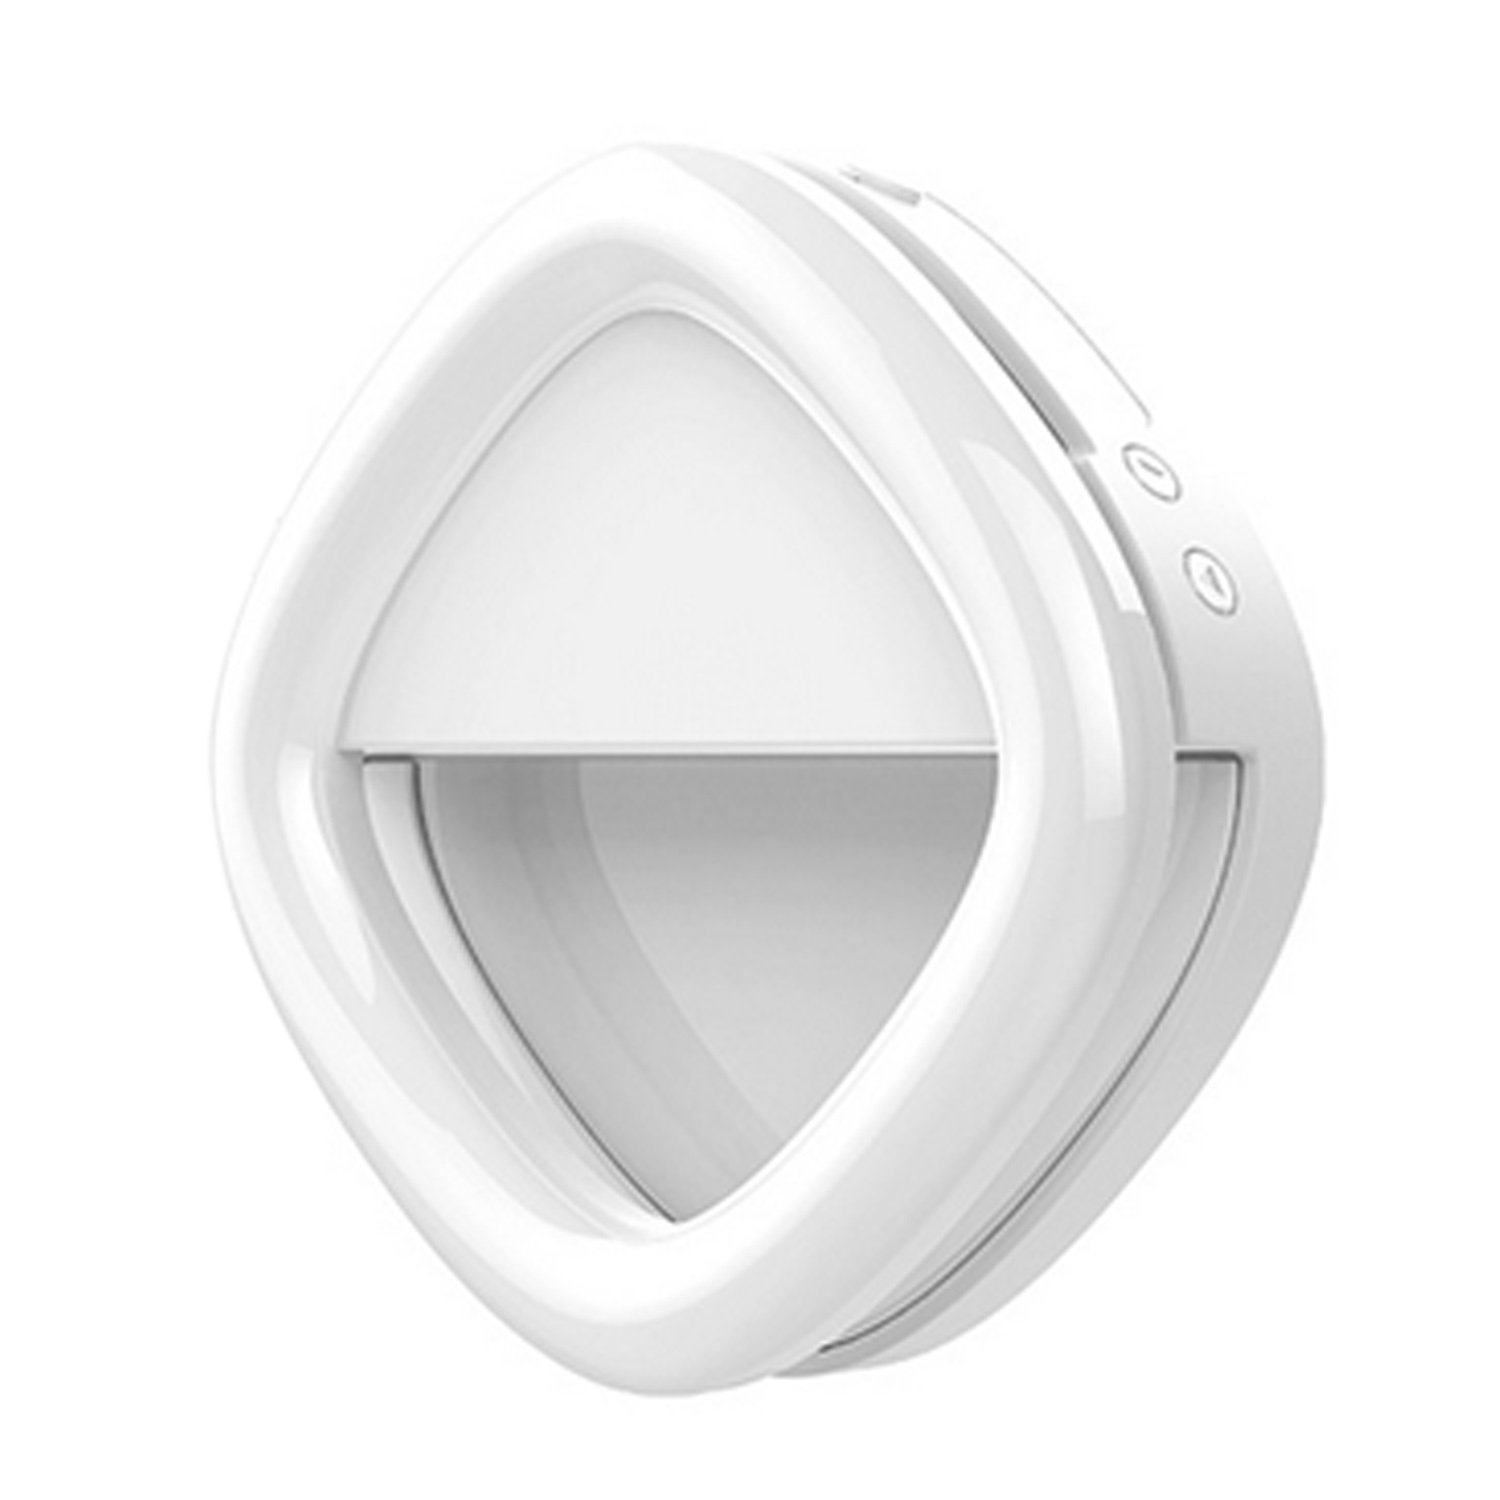 Phone Selfie LED Light Camera Ring Light Built in 800mAh Battery Power Bank for iPhone X 8 7 6 Plus iPad Cell Phones White